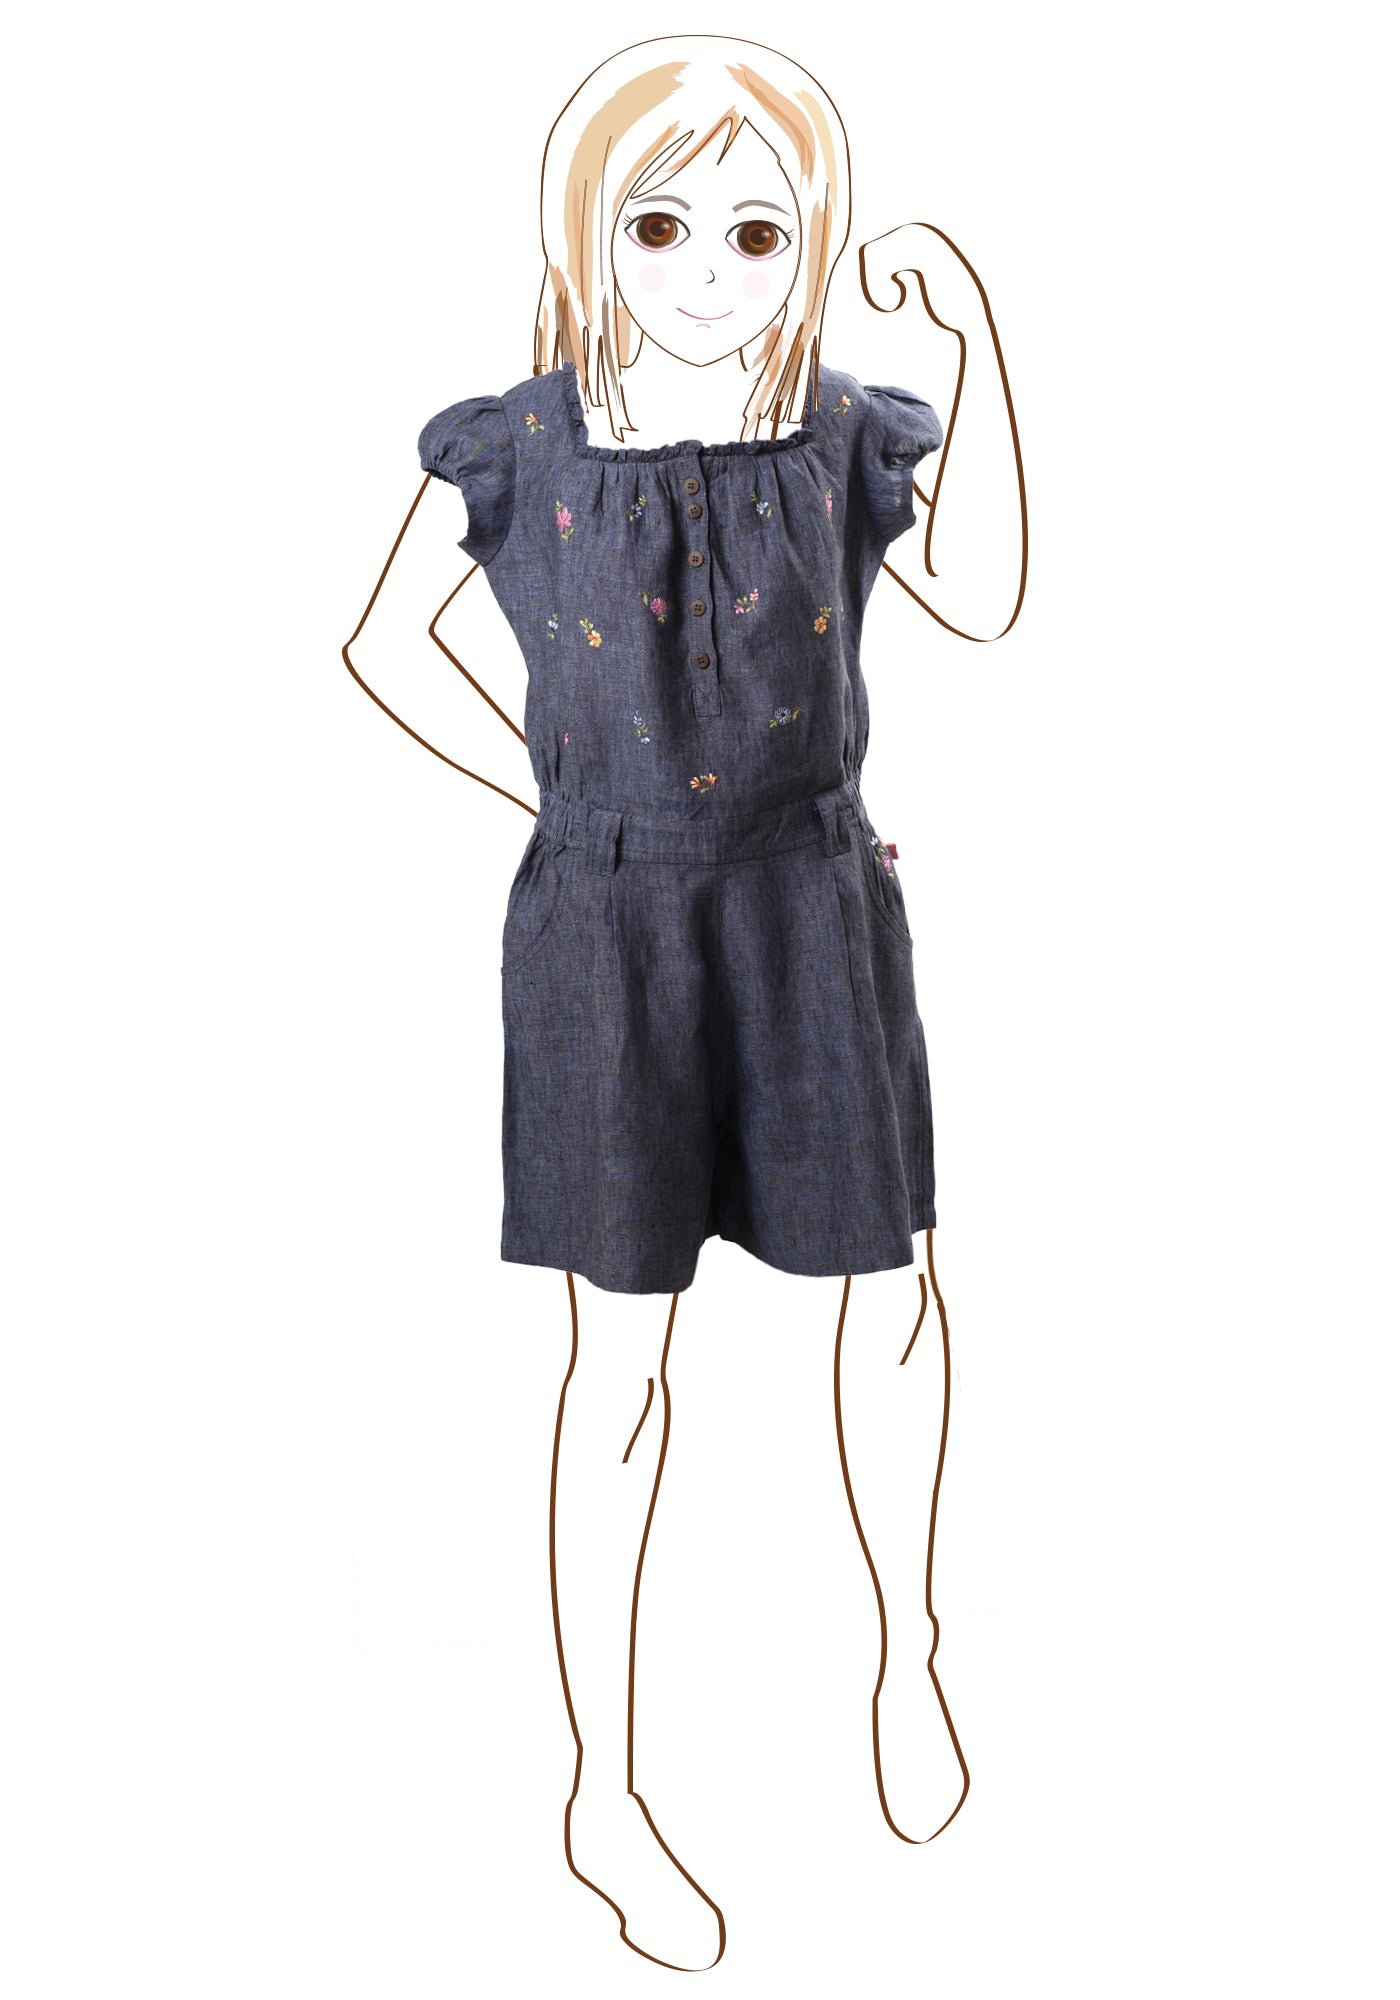 Bluebell Girls Jumpsuit in Denim Blue Linen - MINC ecofashion